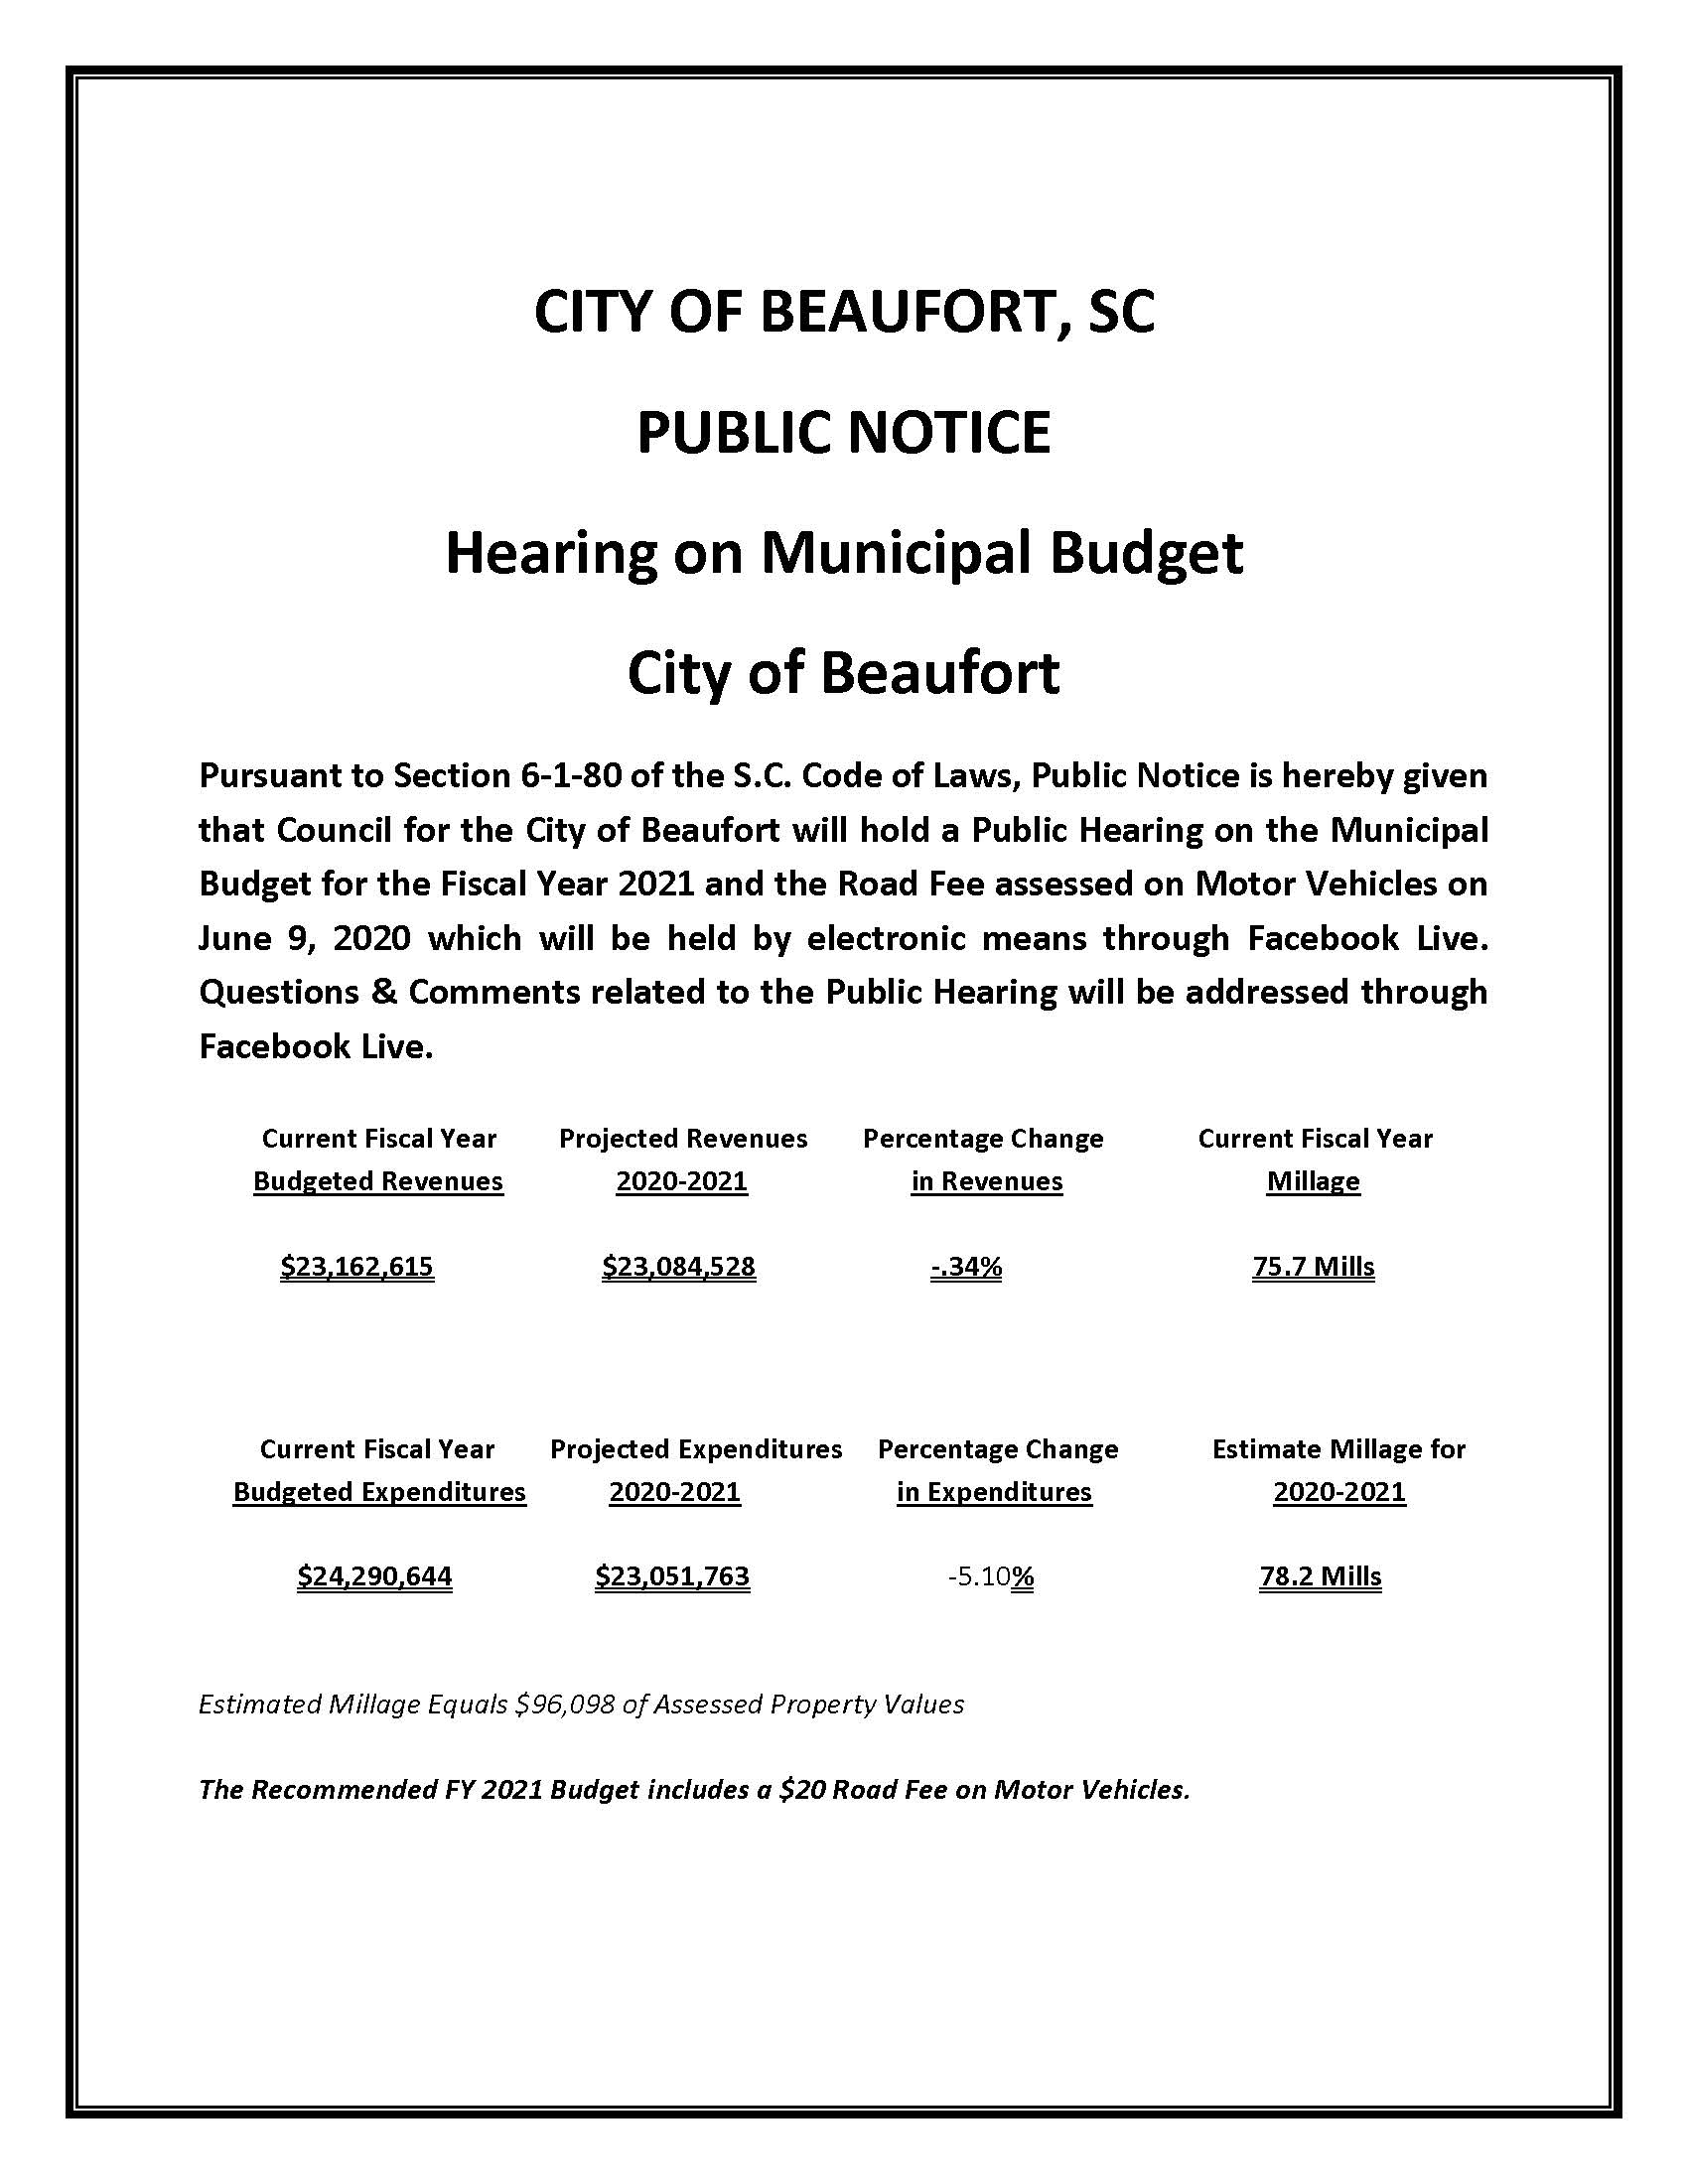 CITY OF BEAUFORT Public Notice Budget FY 2021